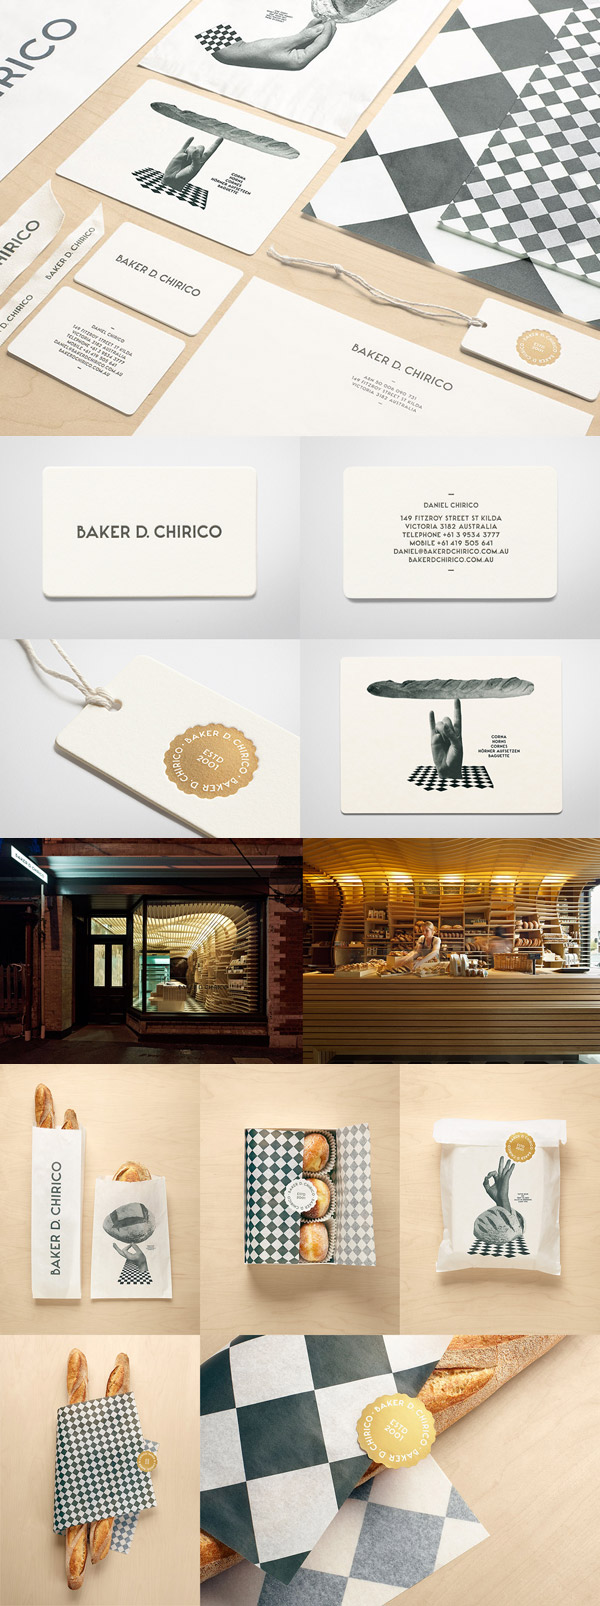 Baker D. Chirico's Minimalist Business Card 